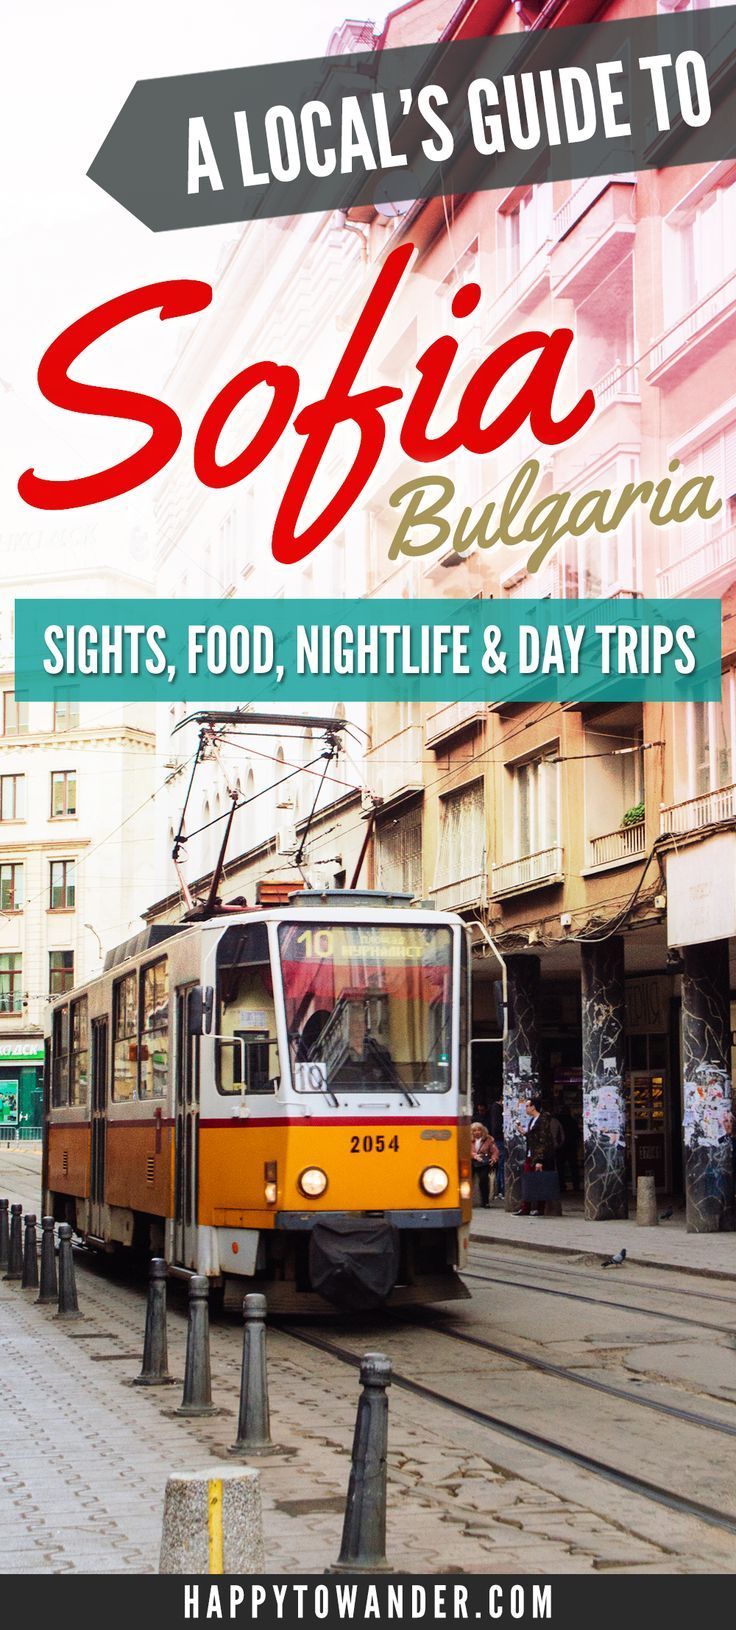 Sofia, Bulgaria is a brilliantly off-the-beaten path city full of awesome surprises. With its culture-rich atmosphere, brilliant sights and abundance of cool activities, this often overlooked European capital has plenty of layers to uncover (at times, literally). Here's an insider's guide on things to do in Sofia, alongside where to stay, what to eat and …